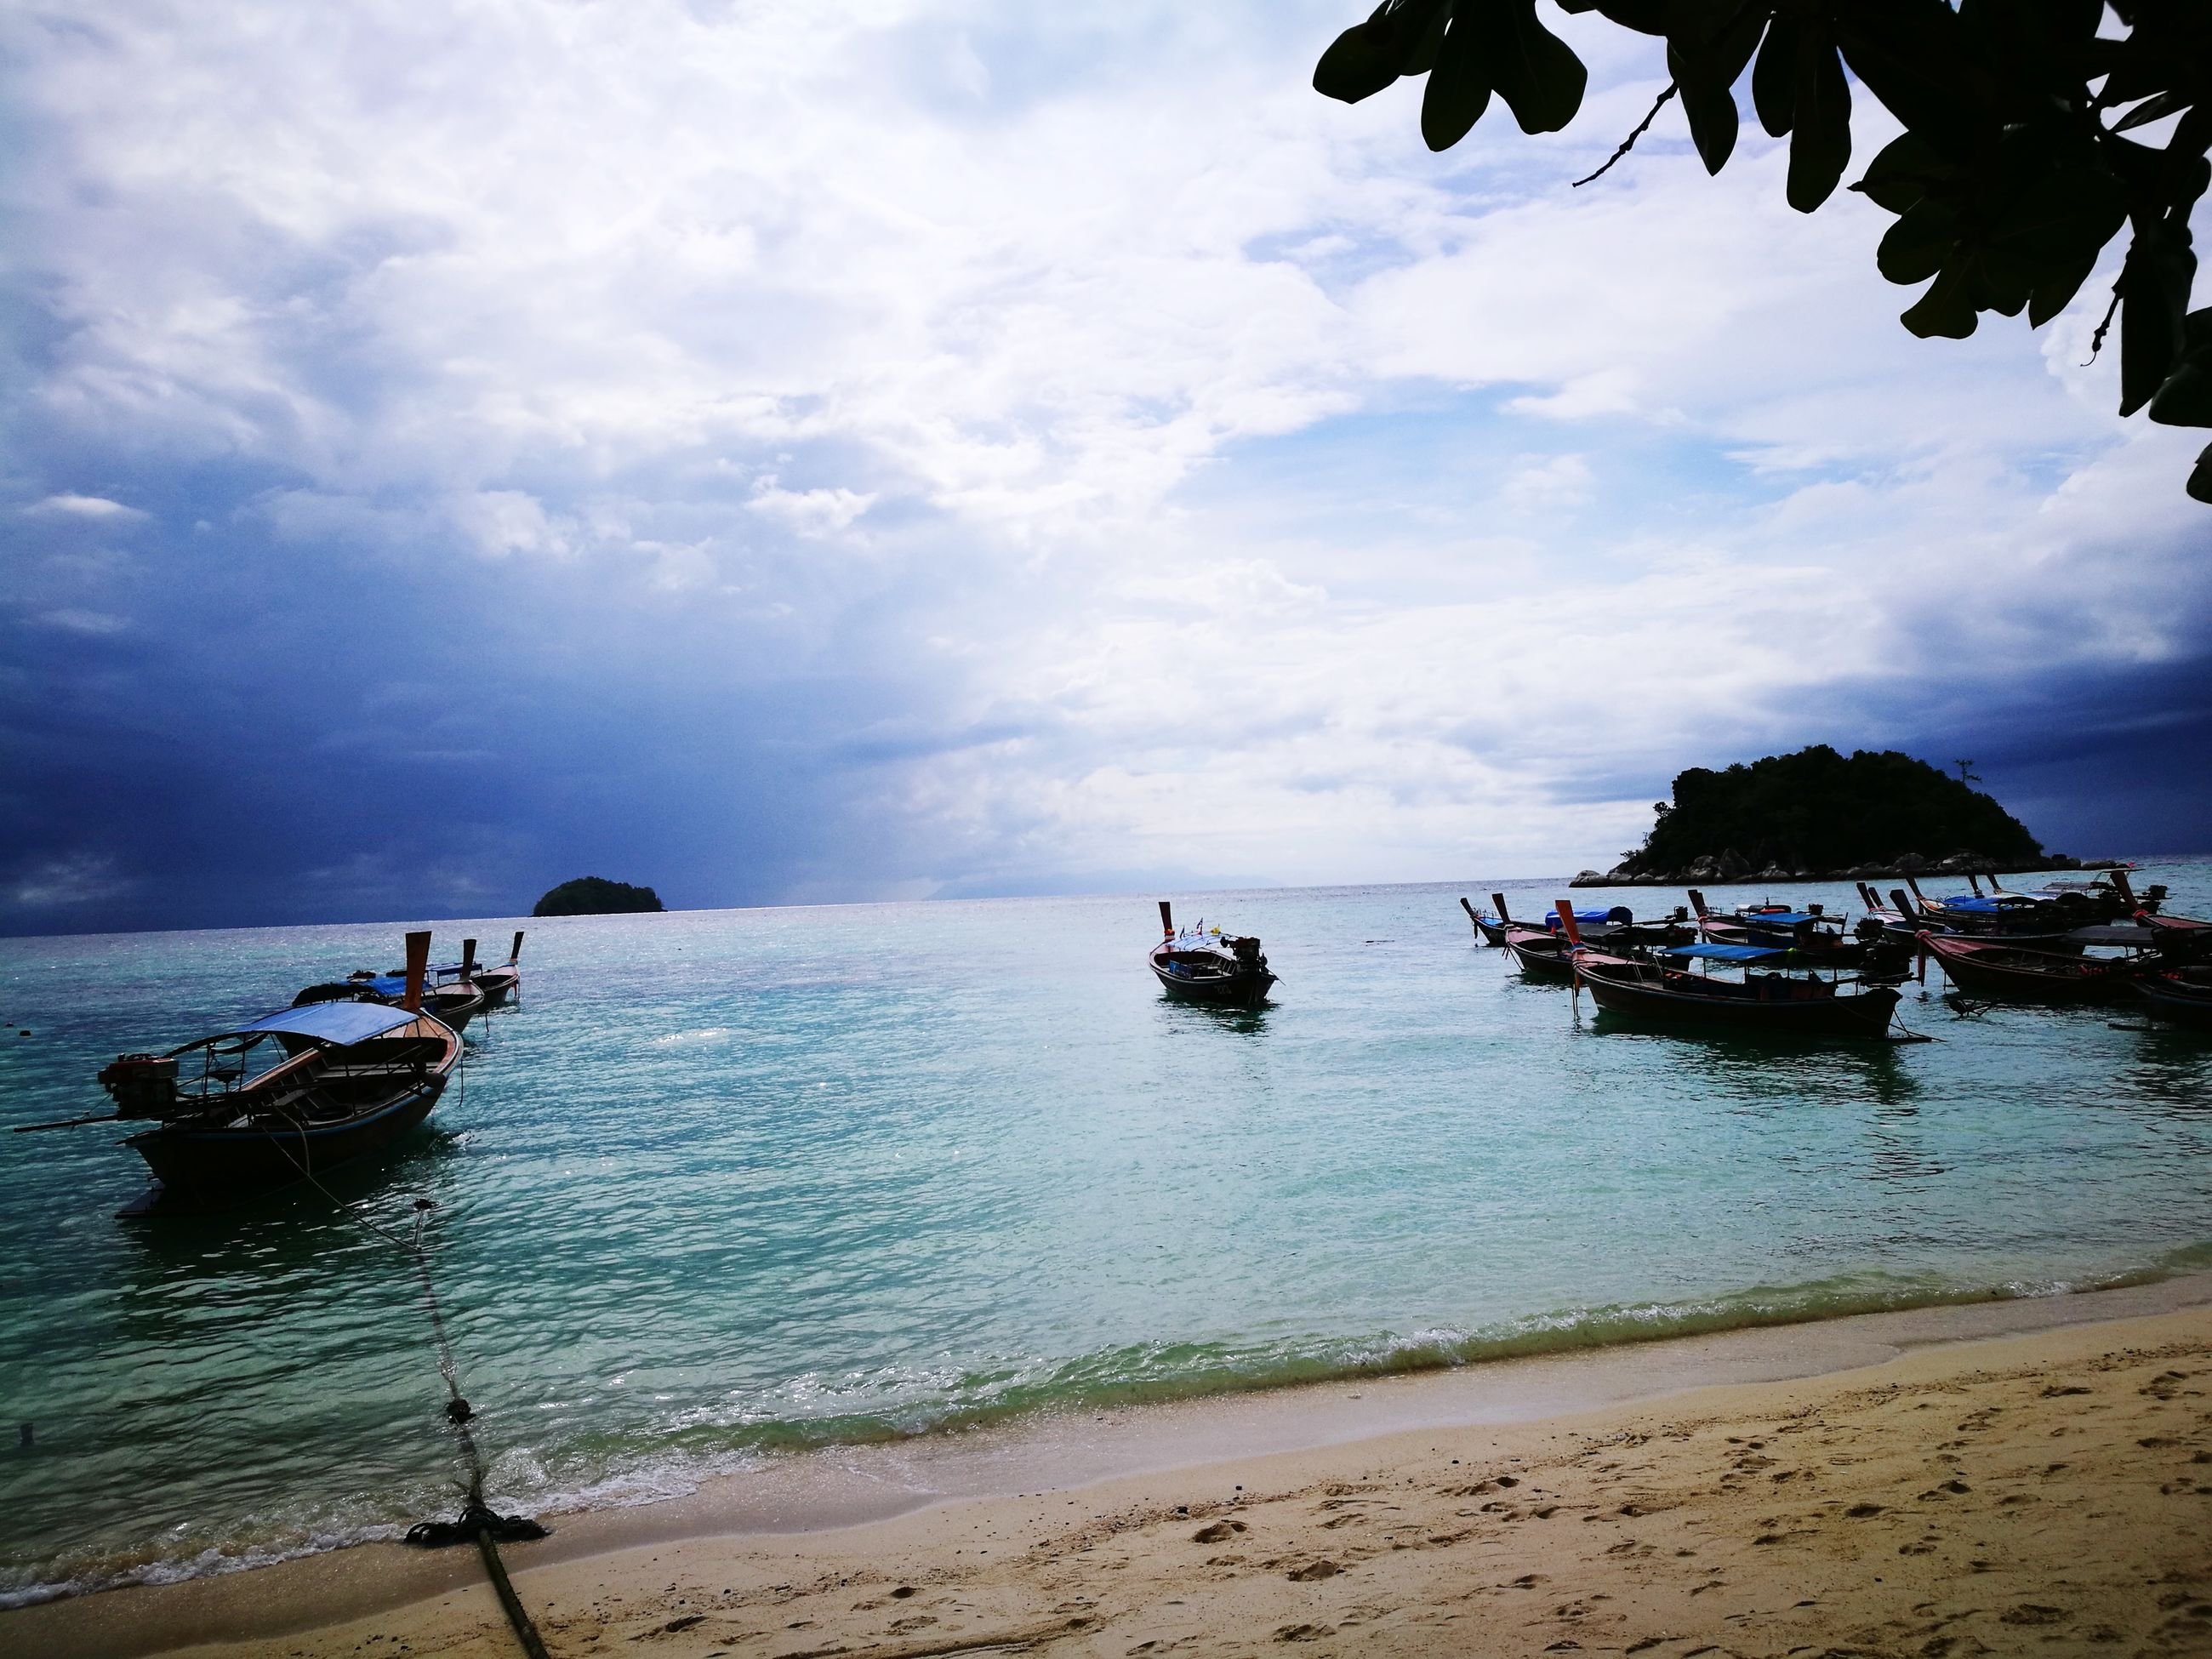 sea, nautical vessel, sky, tranquility, nature, water, transportation, outdoors, tranquil scene, beach, beauty in nature, scenics, cloud - sky, day, no people